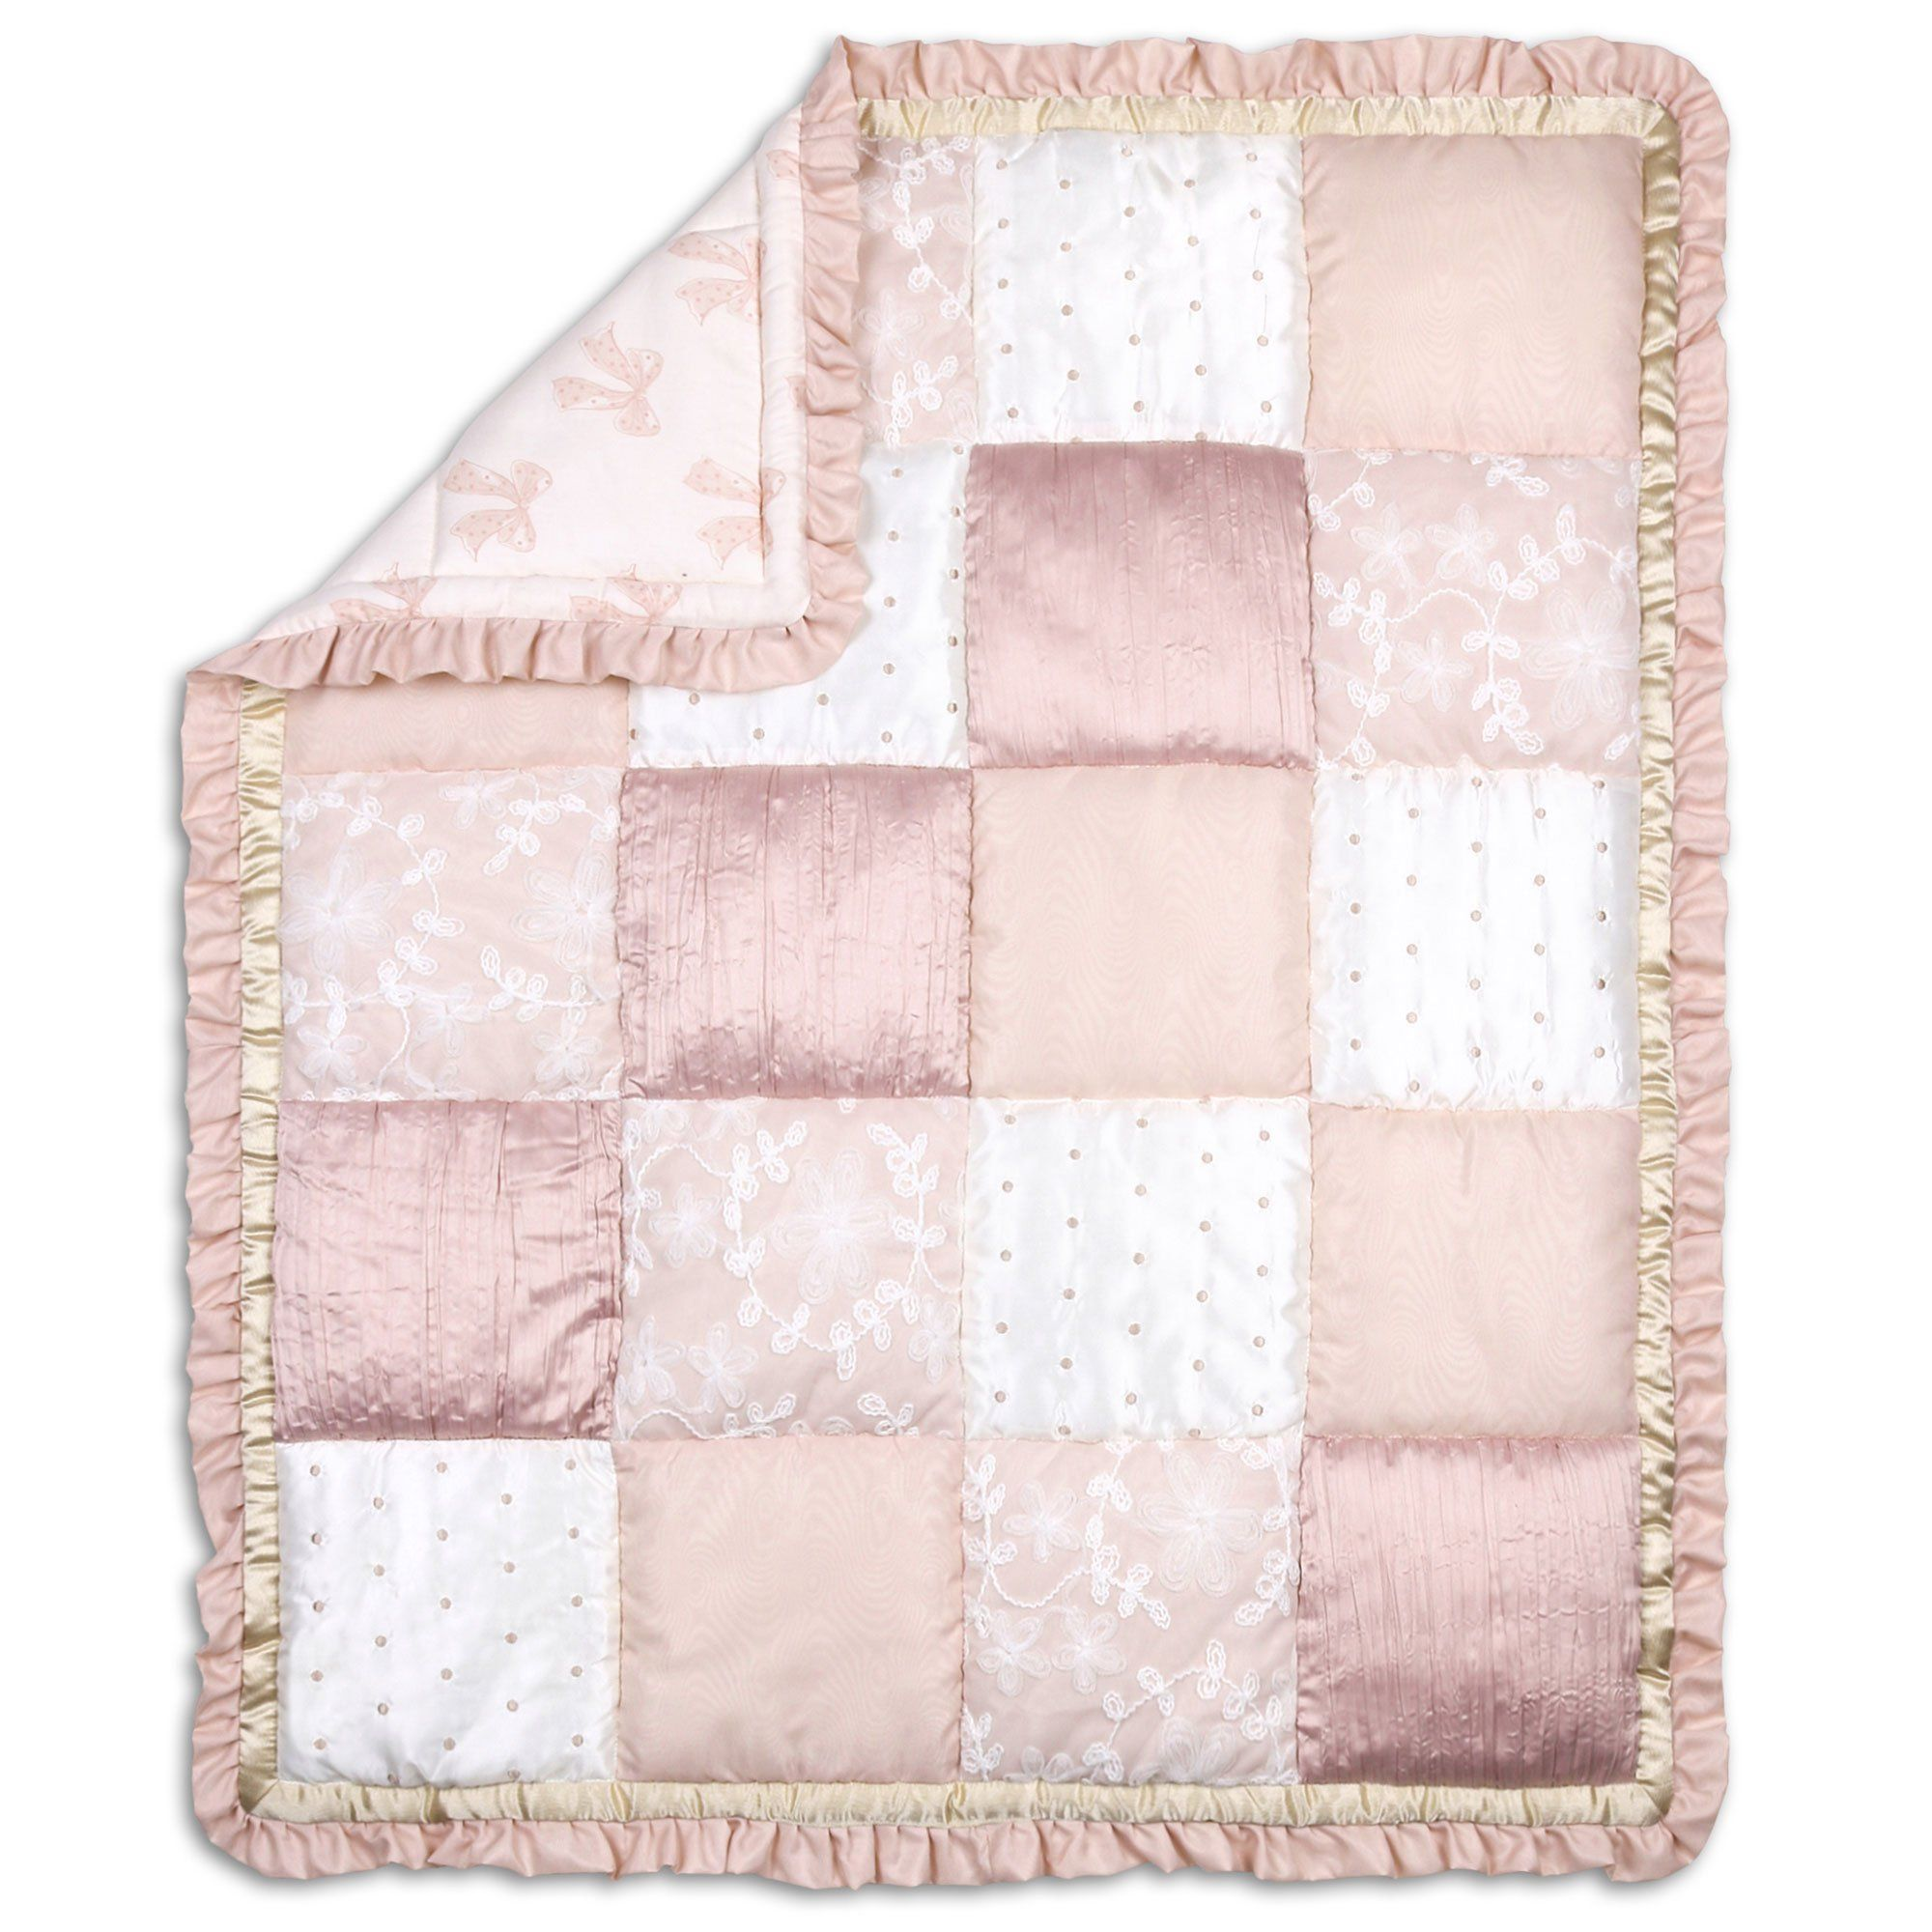 Grace 4 Piece Baby Girl Dusty Pink Floral Layered Patchwork Crib Bedding Set Details Can Be Found By Clicking Pink Crib Bedding Crib Bedding Girl Pink Crib